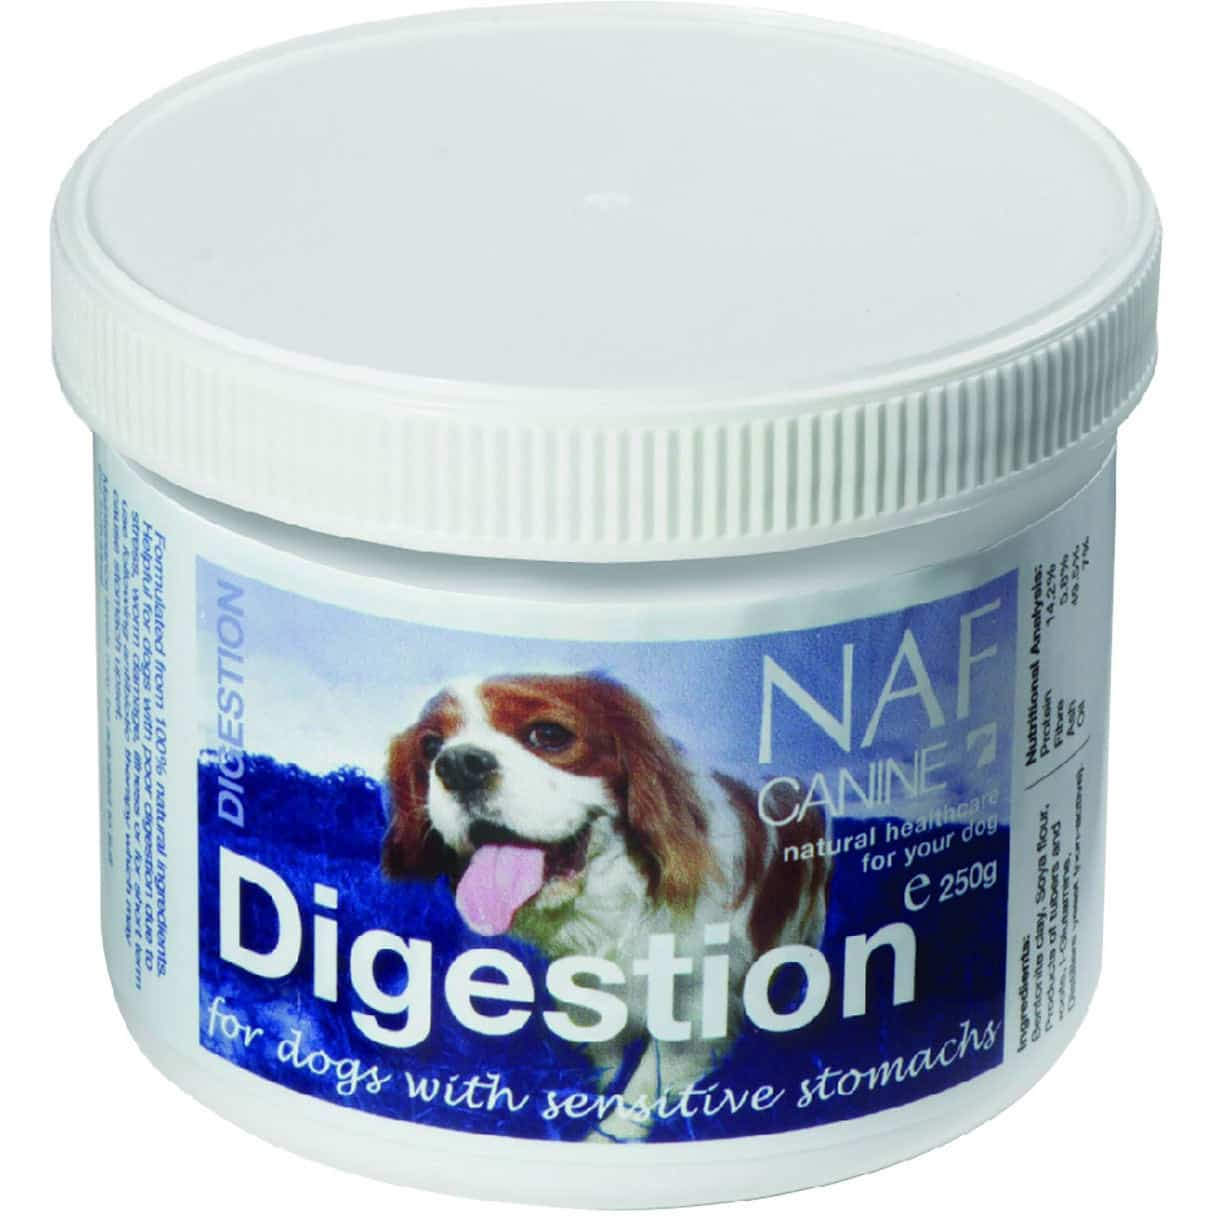 Complément alimentaire pour chiens NAF Canine Digestion 250g from Rideaway